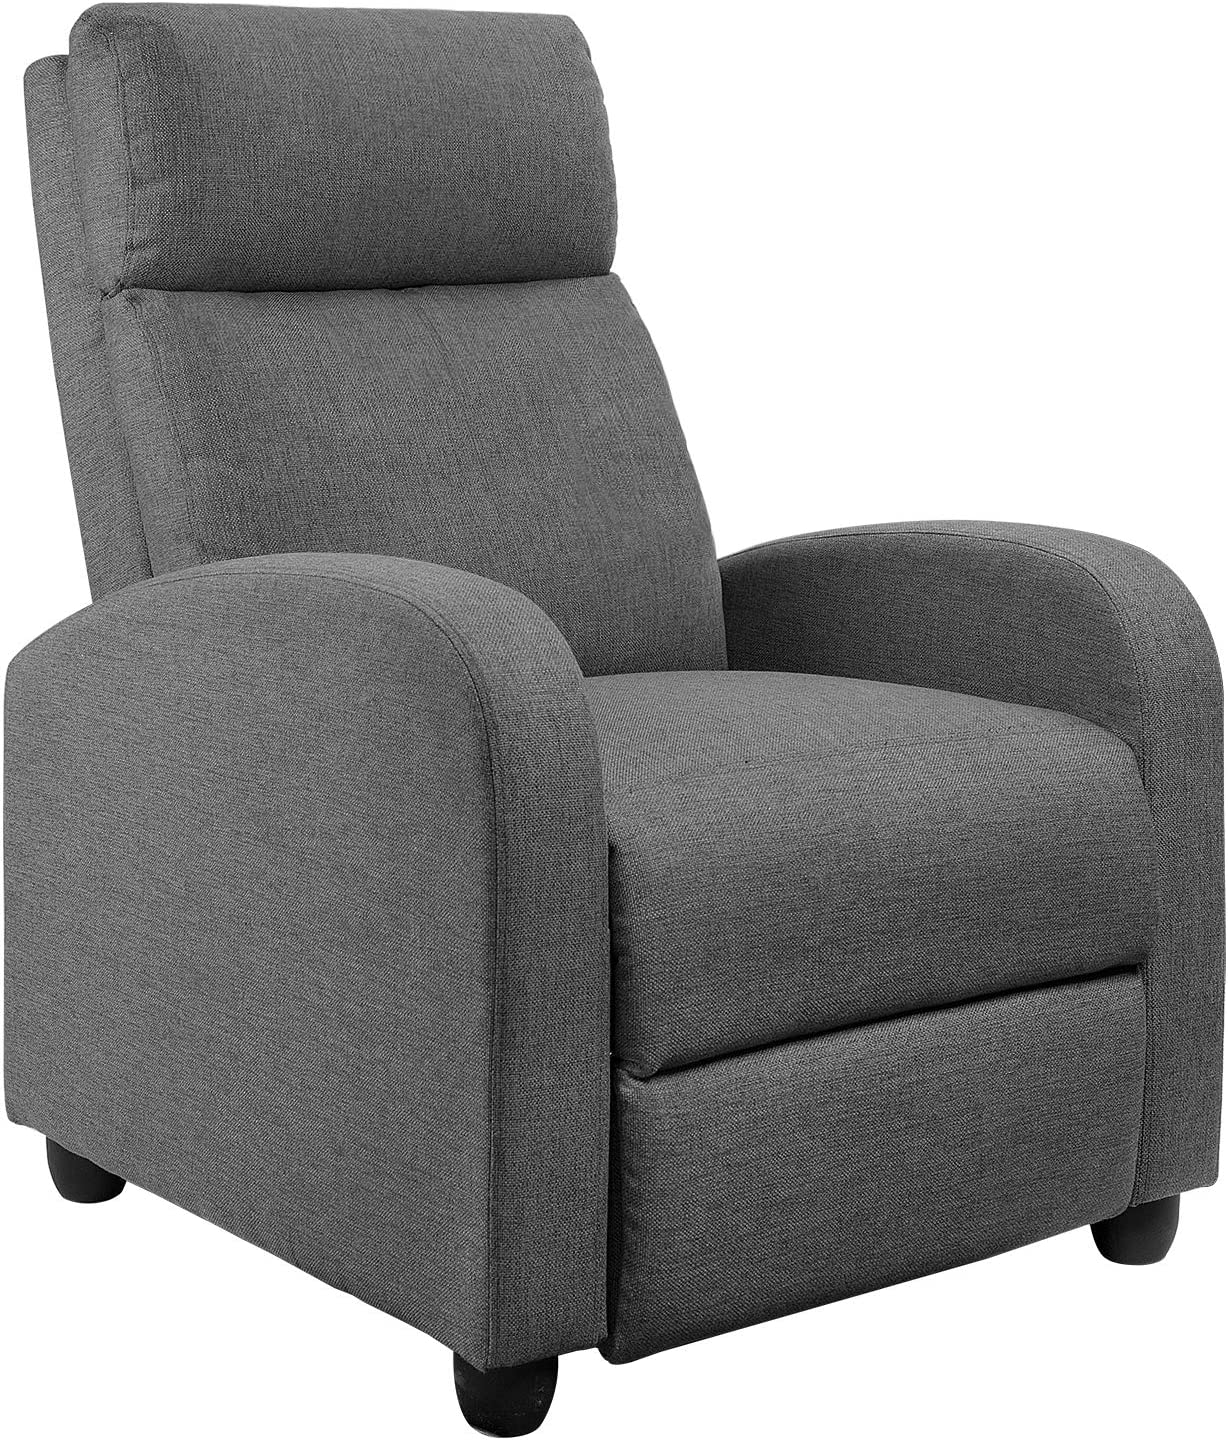 Best Highlighted Model: JUMMICO Single Recliner Sofa with Adjustable Home Theater.